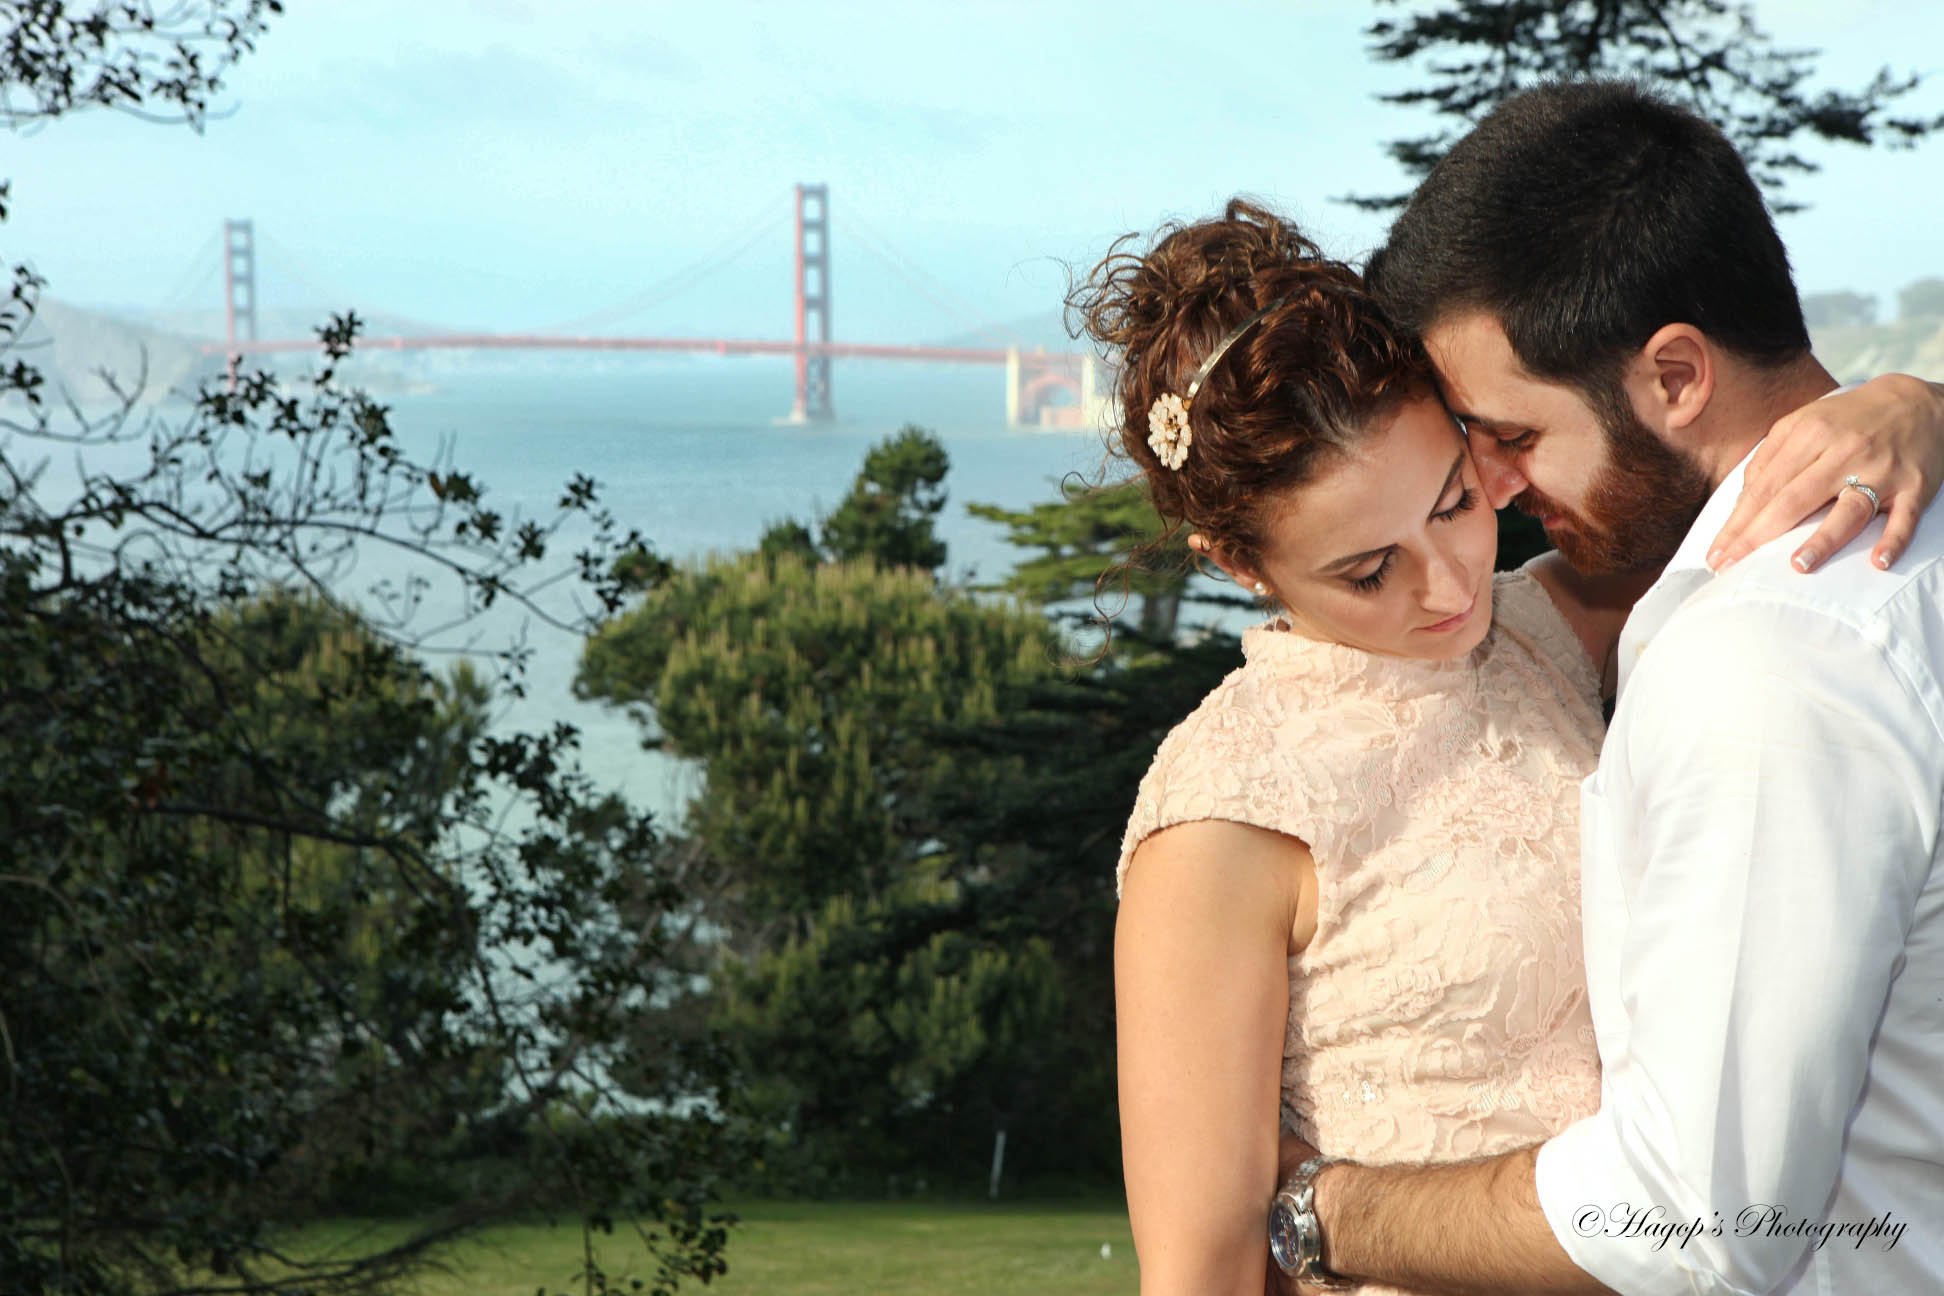 romantic photo with the golden gate bridge in the background